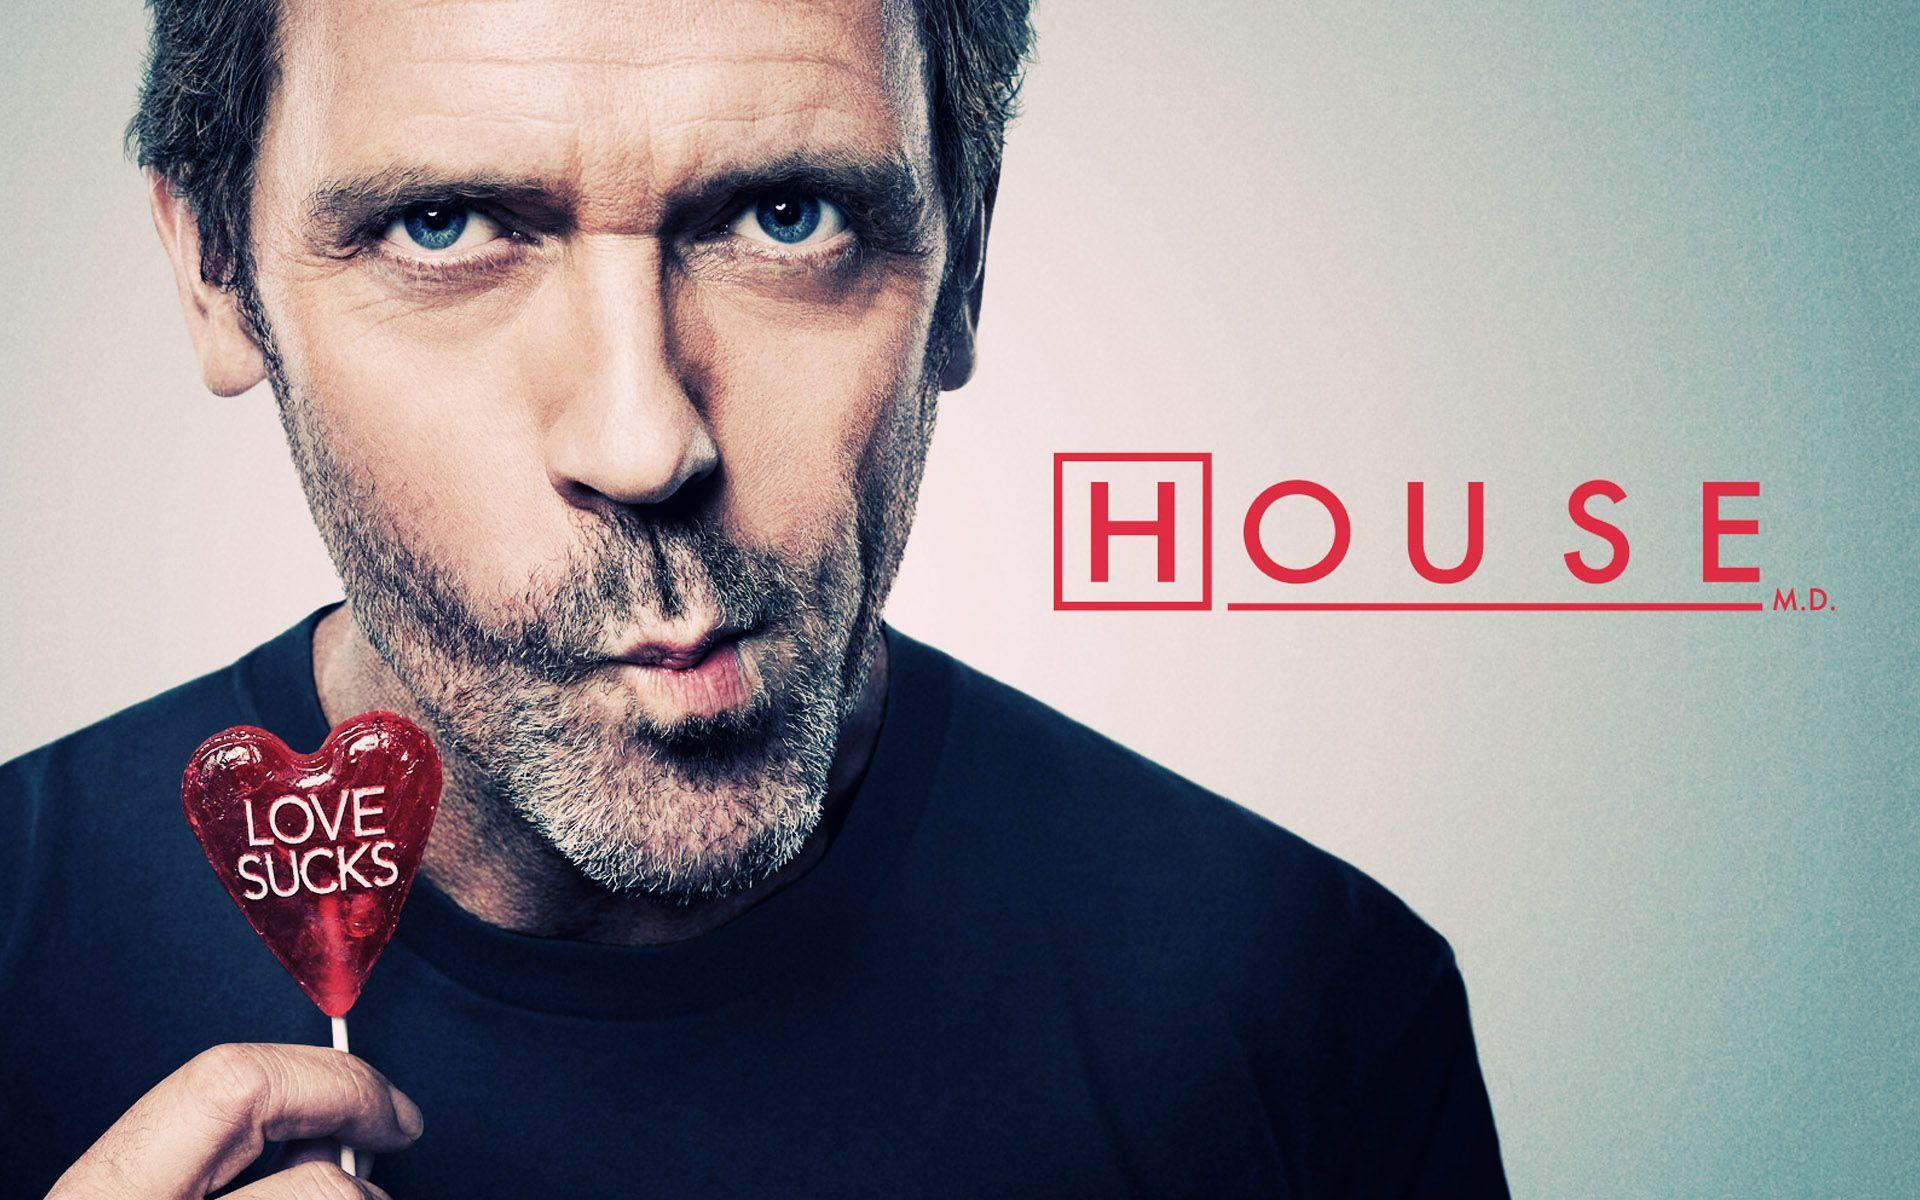 House Md Wallpapers - Full HD wallpaper search